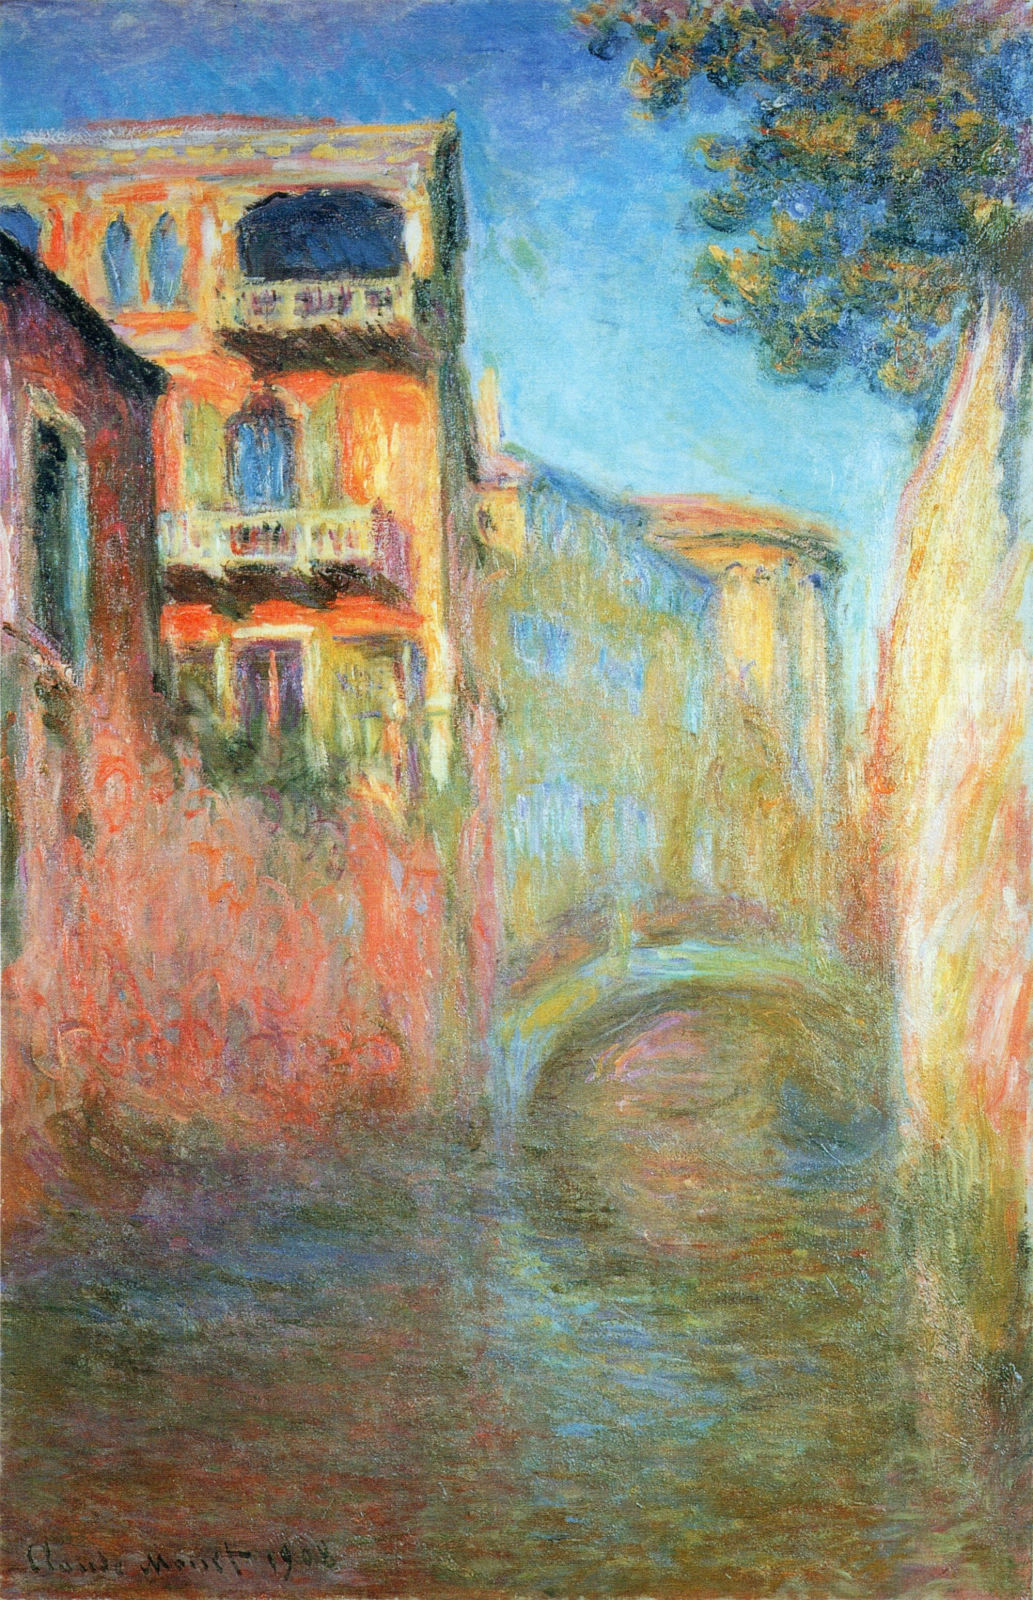 https://uploads2.wikiart.org/images/claude-monet/rio-della-salute-03.jpg